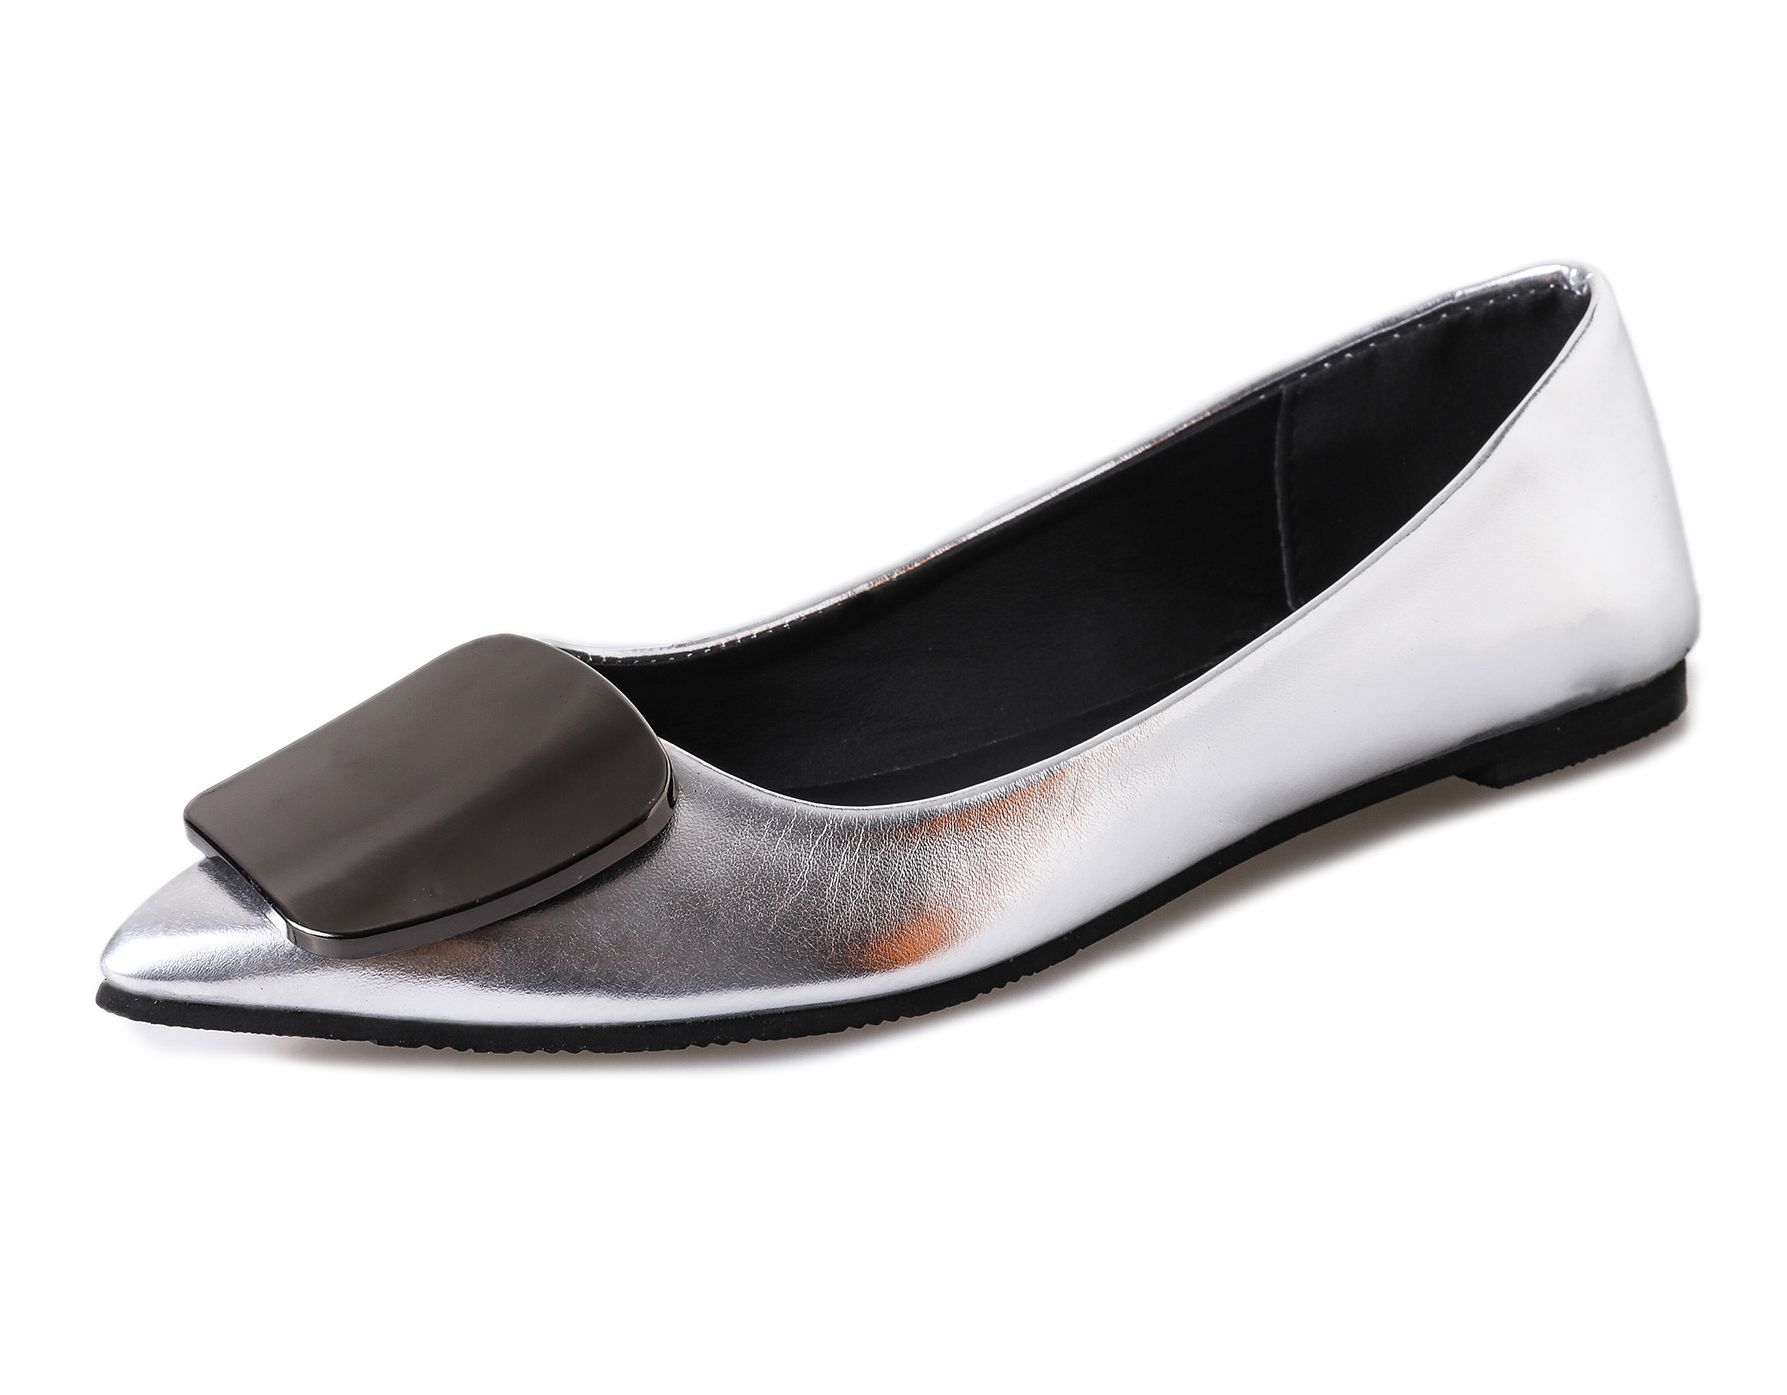 Luxury Brand Shoes Women 2017 New Pointed Toe Flats Fashion Metal Decoration Ballet Flat Shoes Ballerines Femme Chaussures spring autumn solid metal decoration flats shoes fashion women flock pointed toe buckle strap ballet flats size 35 40 k257